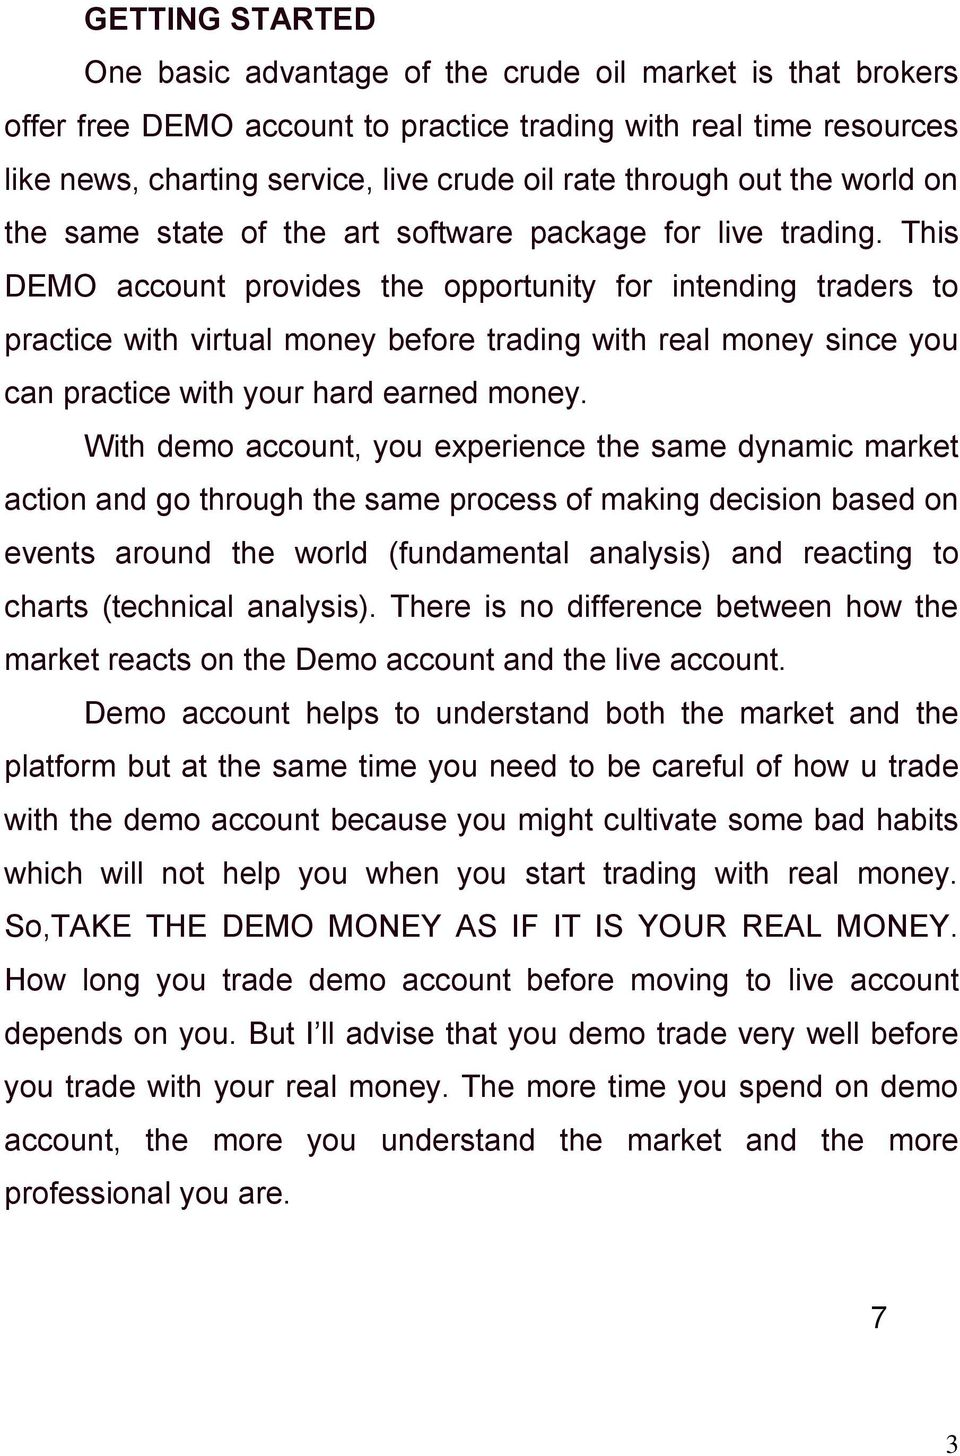 This DEMO account provides the opportunity for intending traders to practice with virtual money before trading with real money since you can practice with your hard earned money.